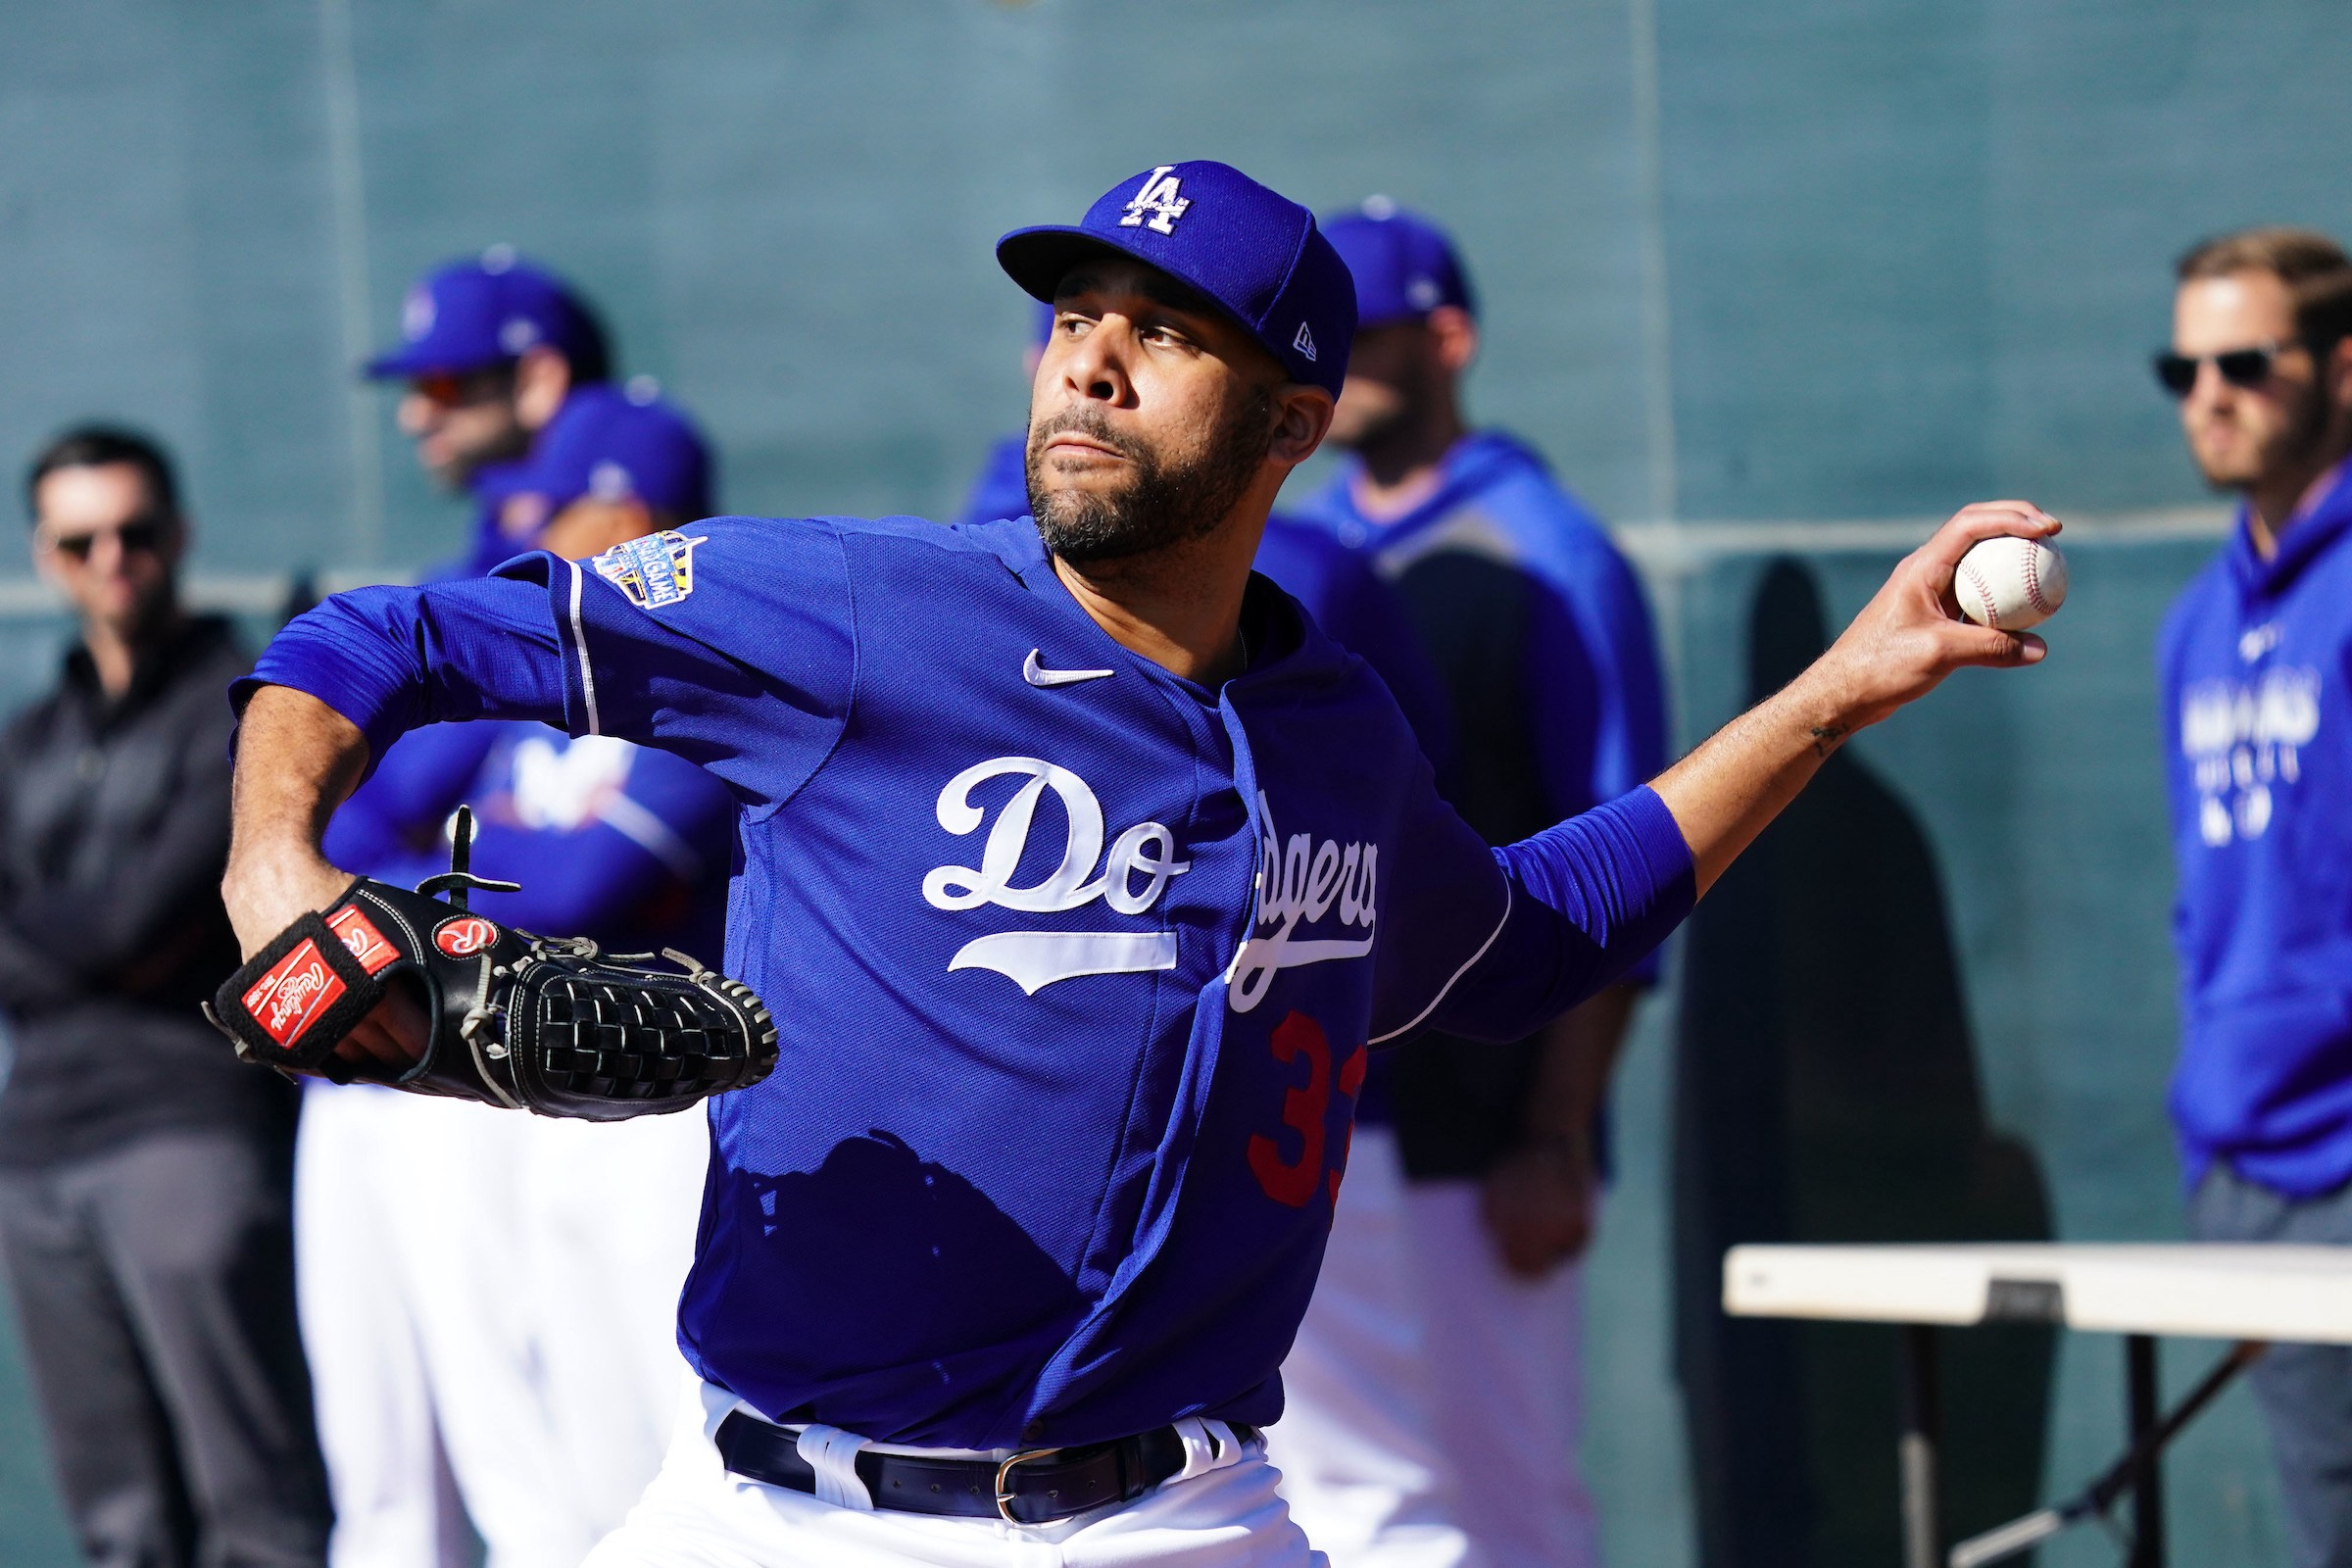 Dodgers Work Out at Dodger Stadium, David Price Donates to Minor ...